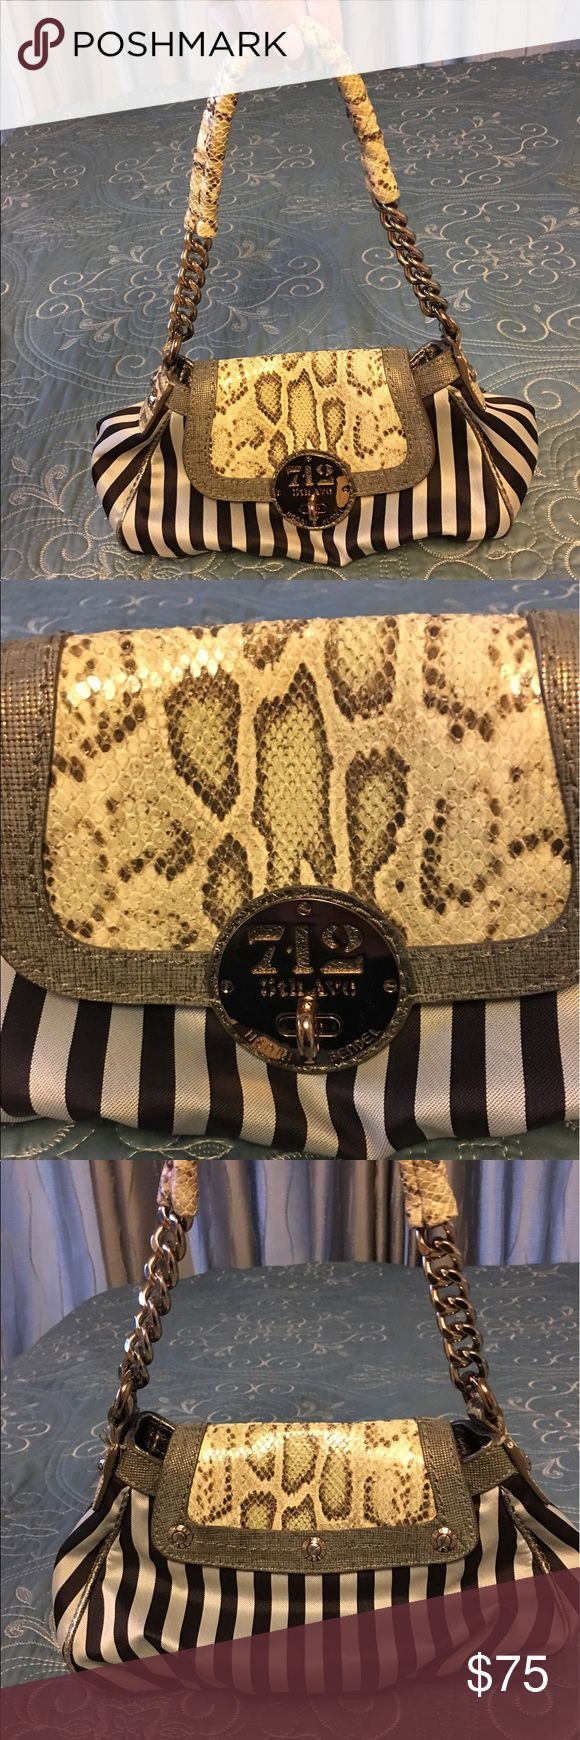 Henri Bendel snake skin and stripes purse Henri Bendel snake skin and brown/white signature stripe purse with chain link strap. Very cute purse. Only worn once. Inside is perfectly clean and a deep purple color. henri bendel Bags Shoulder Bags